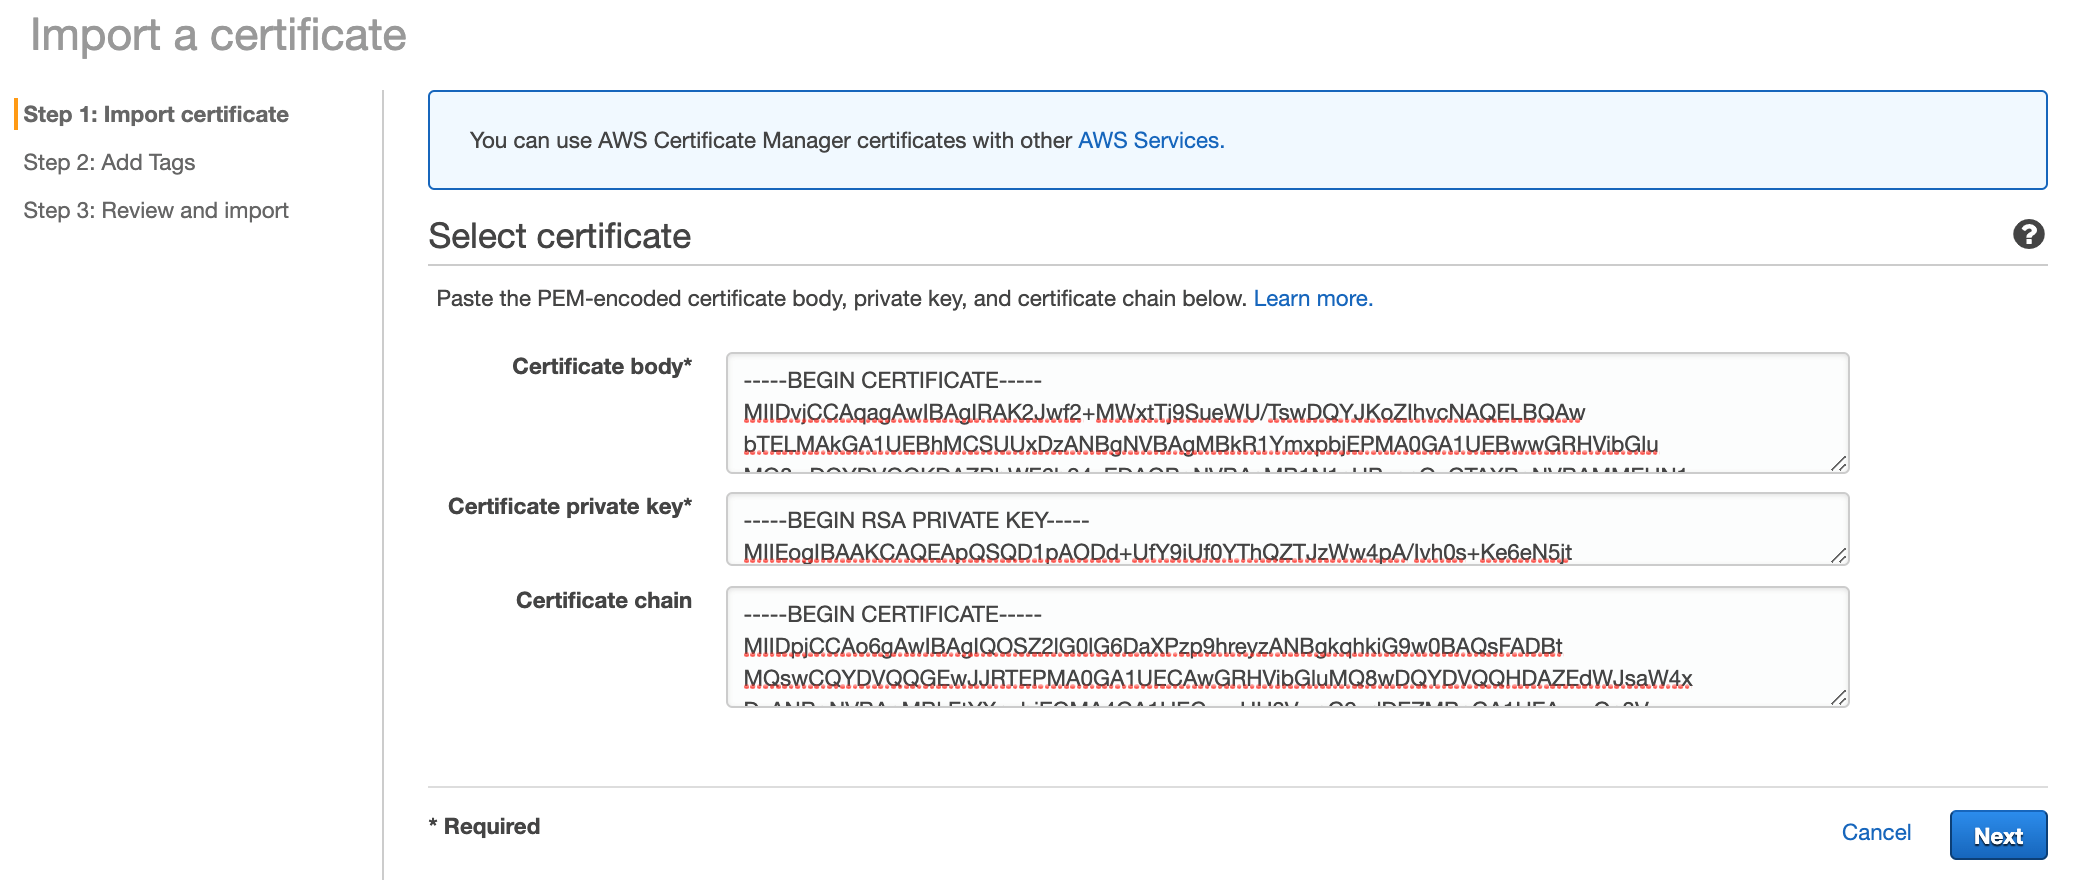 Figure 10: Select a certificate page